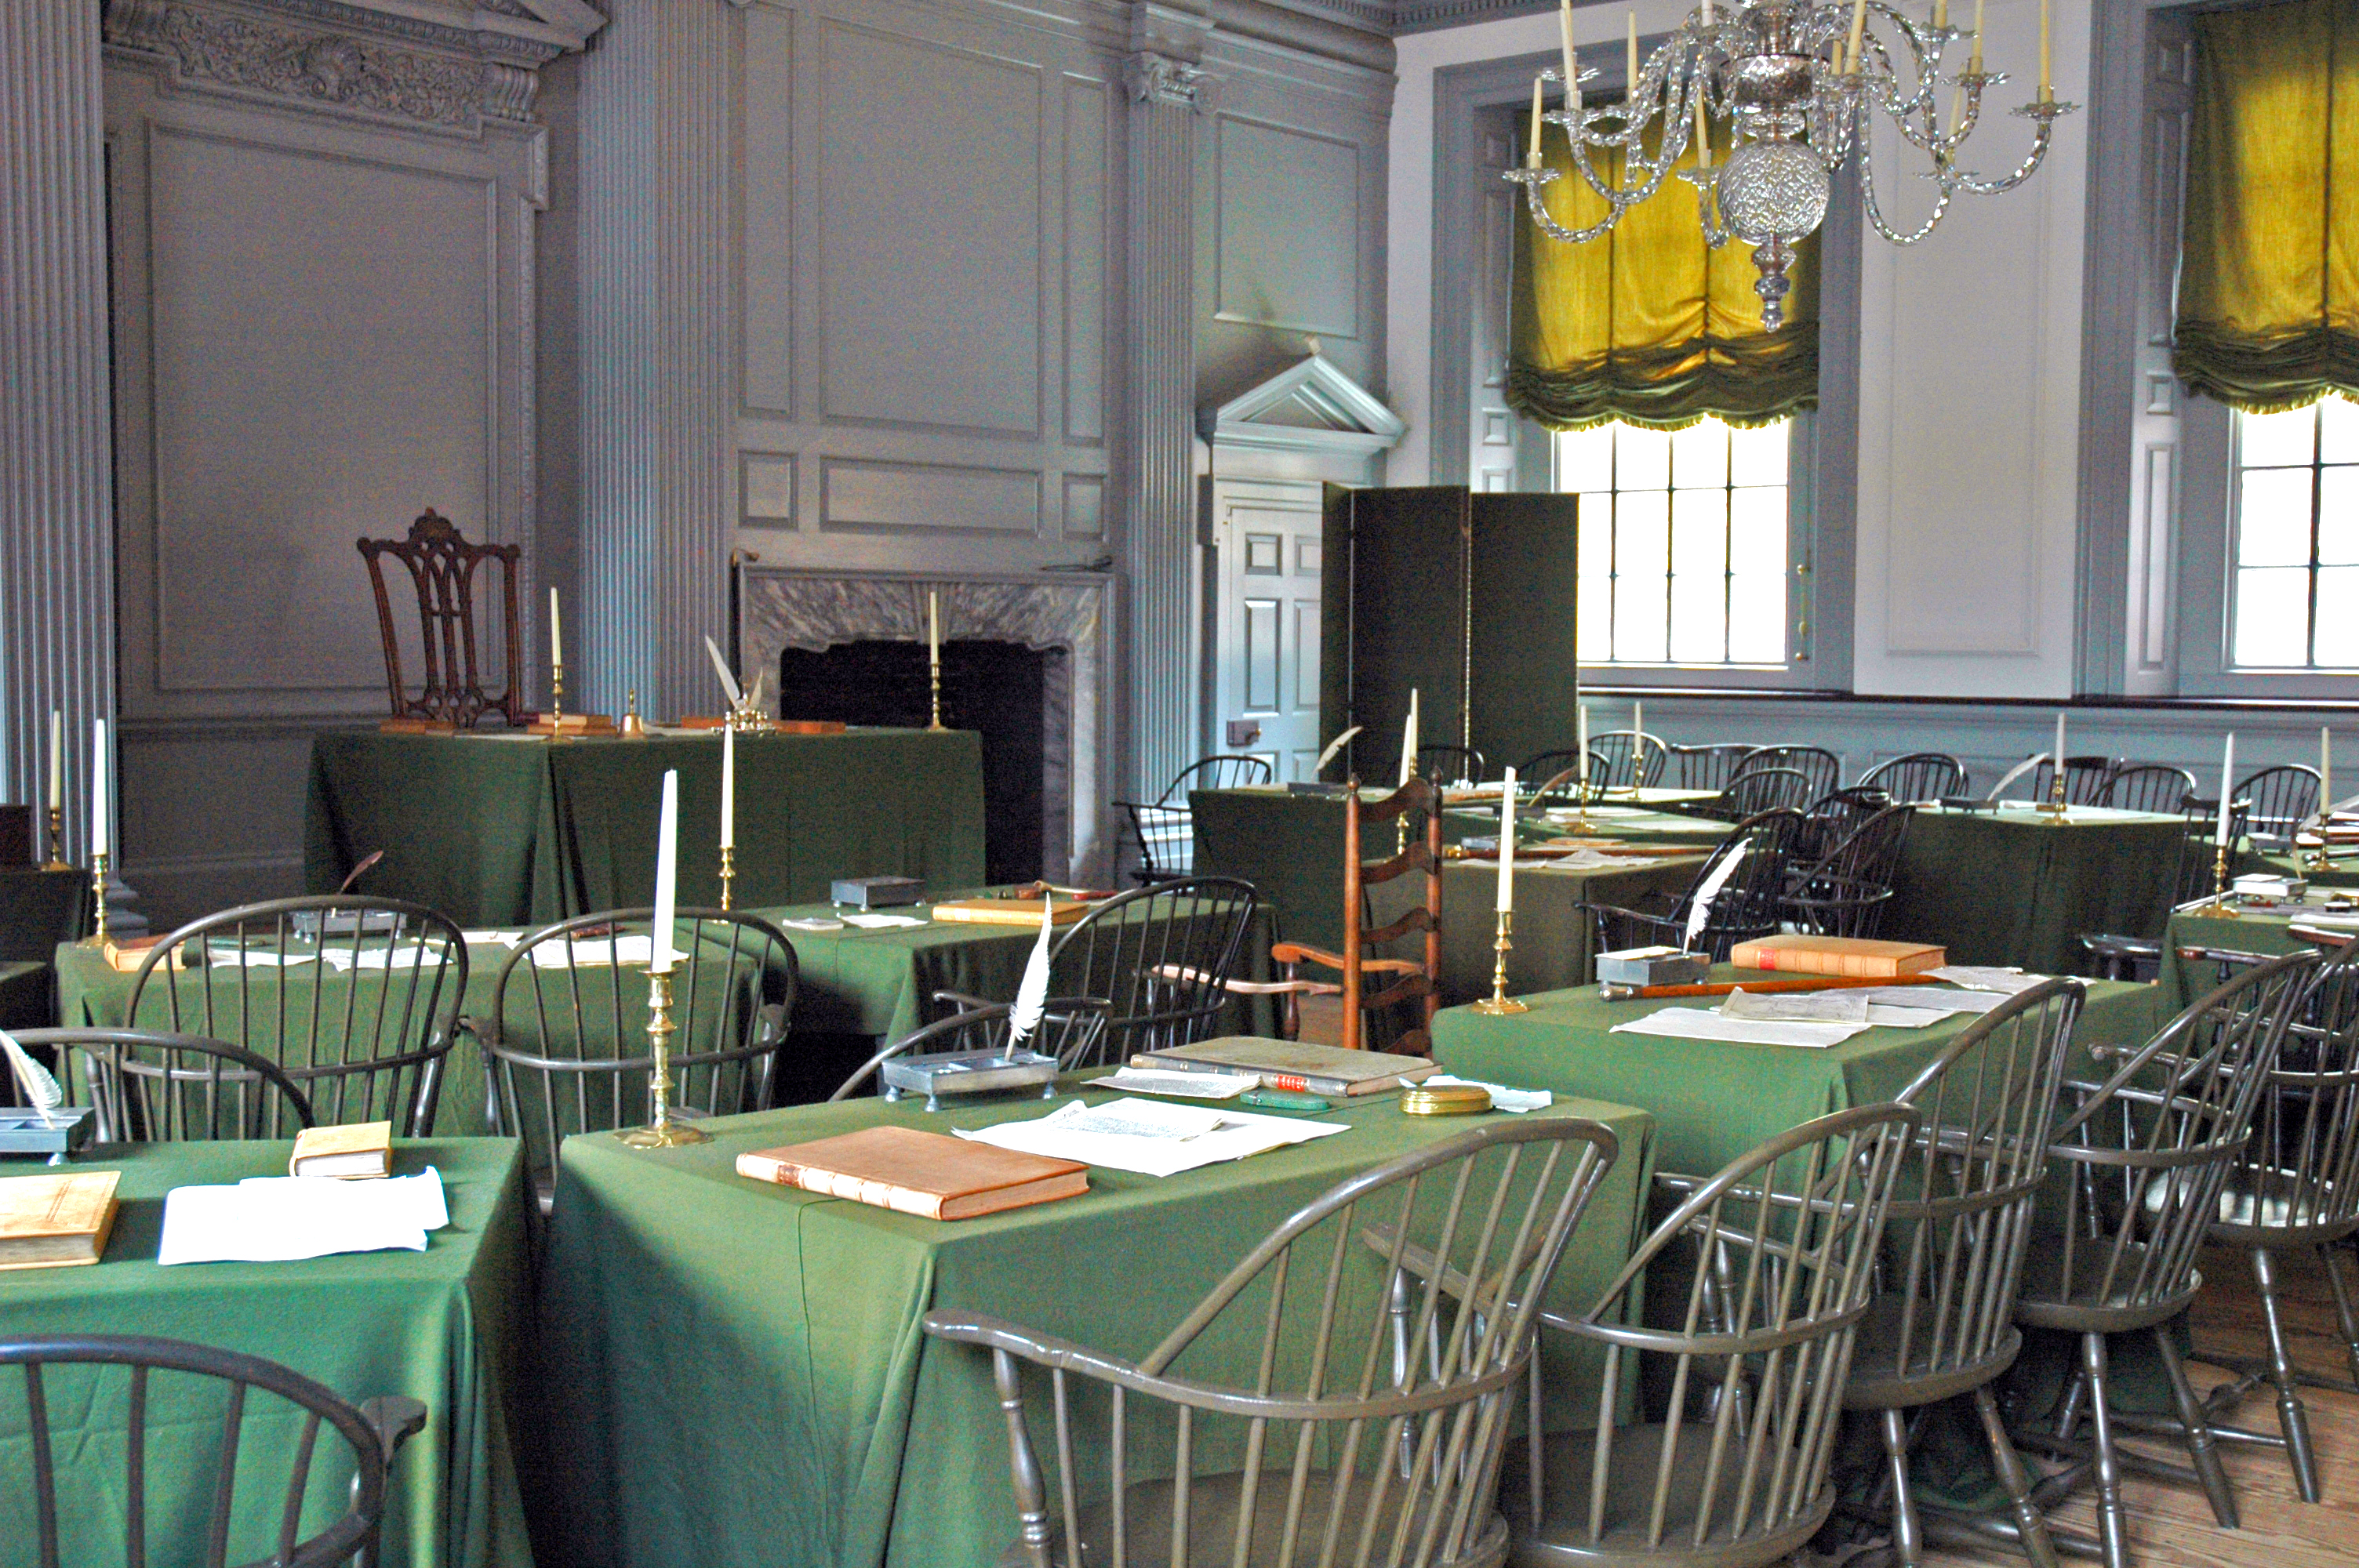 The Assembly Room, in Philadelphia's Independence Hall, where the Second Continental Congress drafted and signed the United States Declaration of Independence. Photo taken on April 25, 2005.